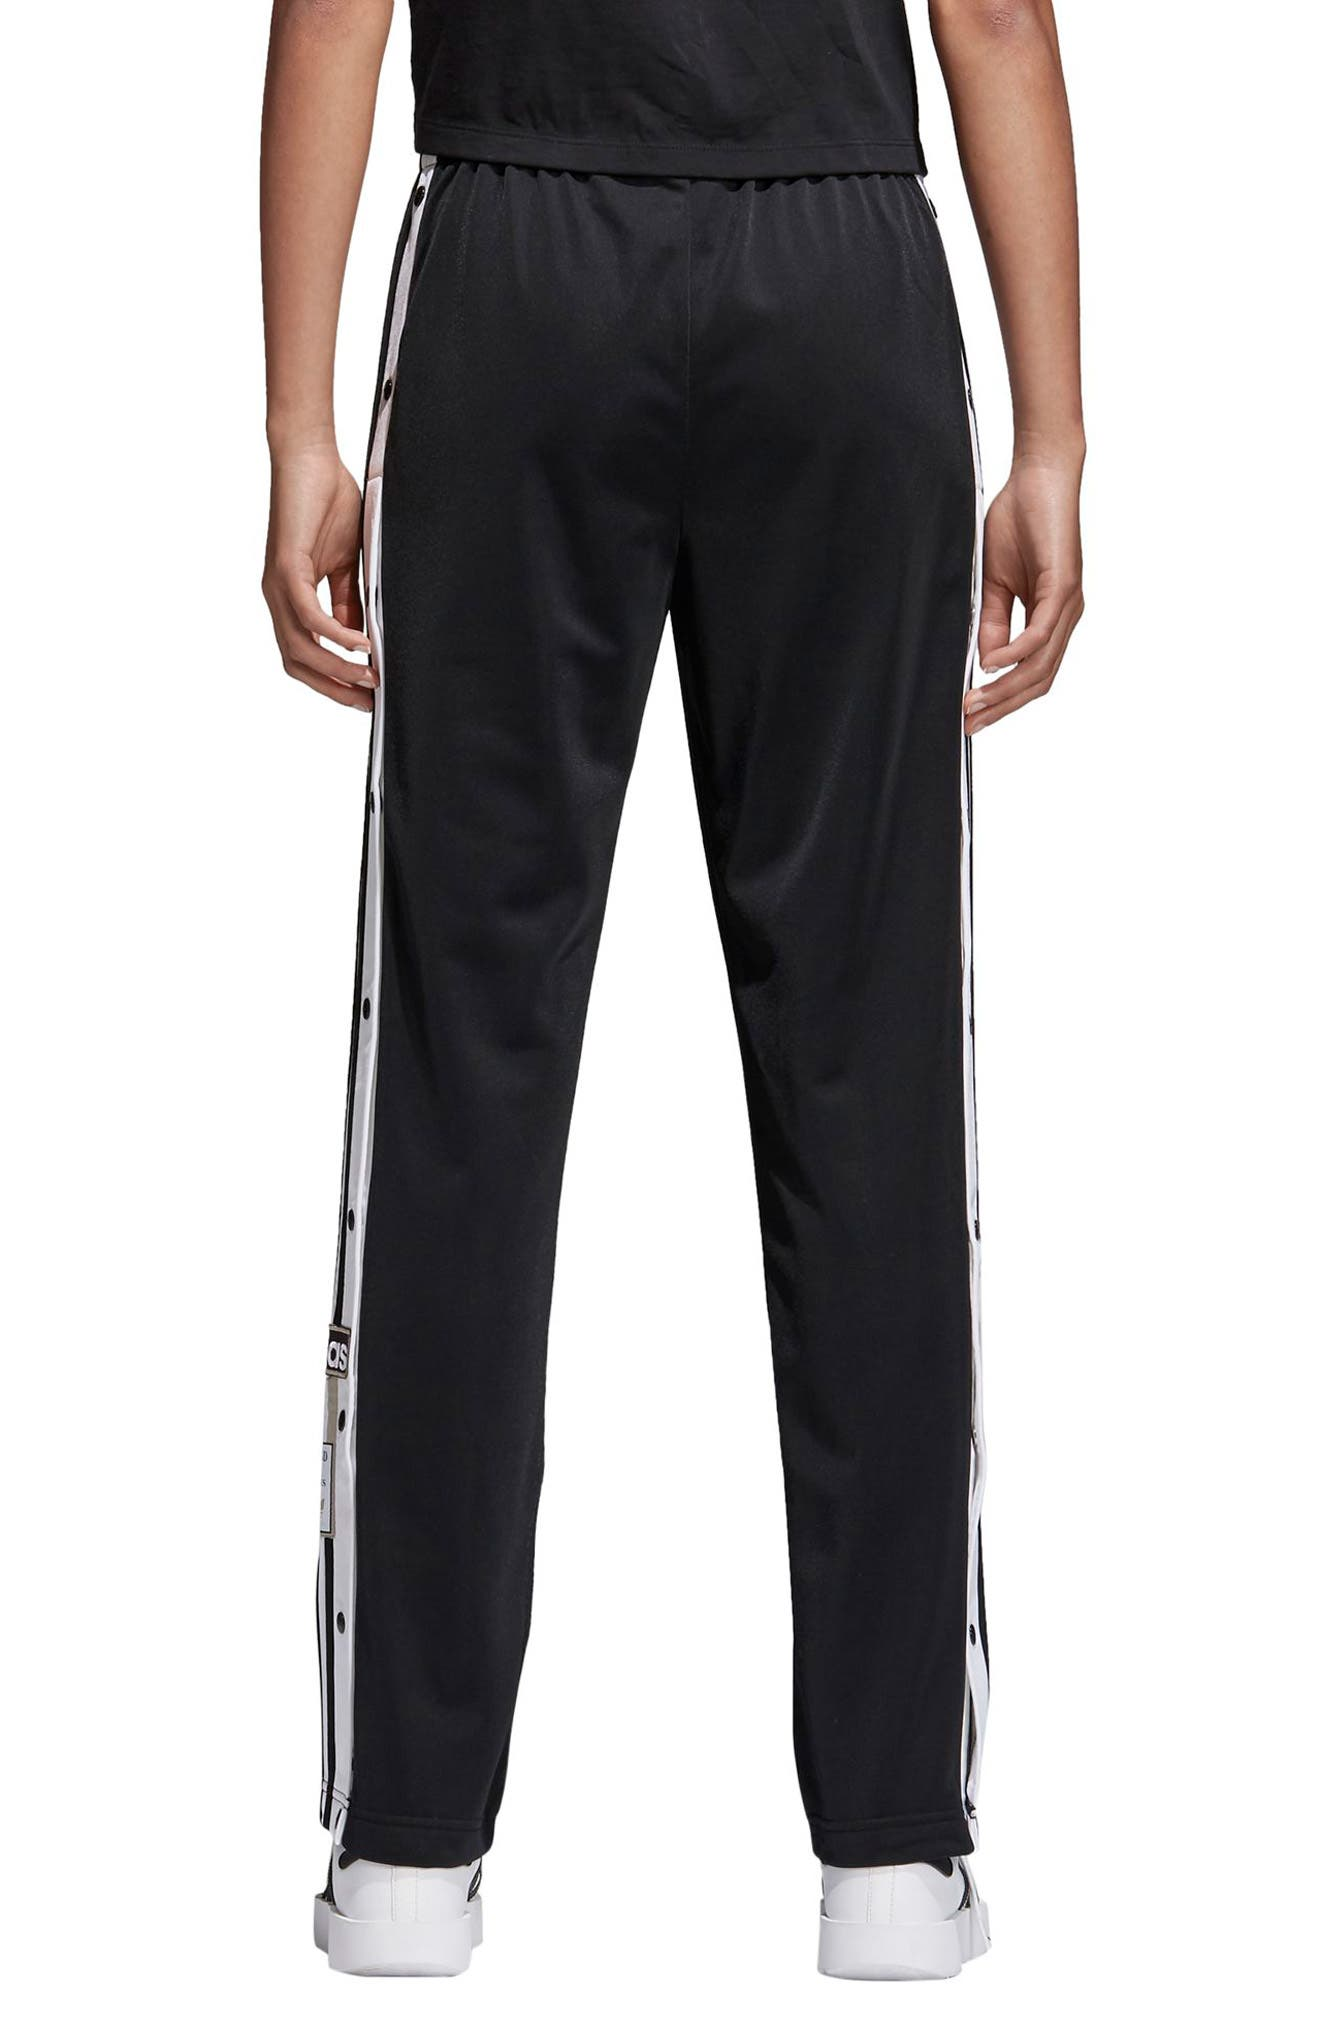 Originals Adibreak Tearaway Track Pants,                             Alternate thumbnail 2, color,                             Black/ Carbon